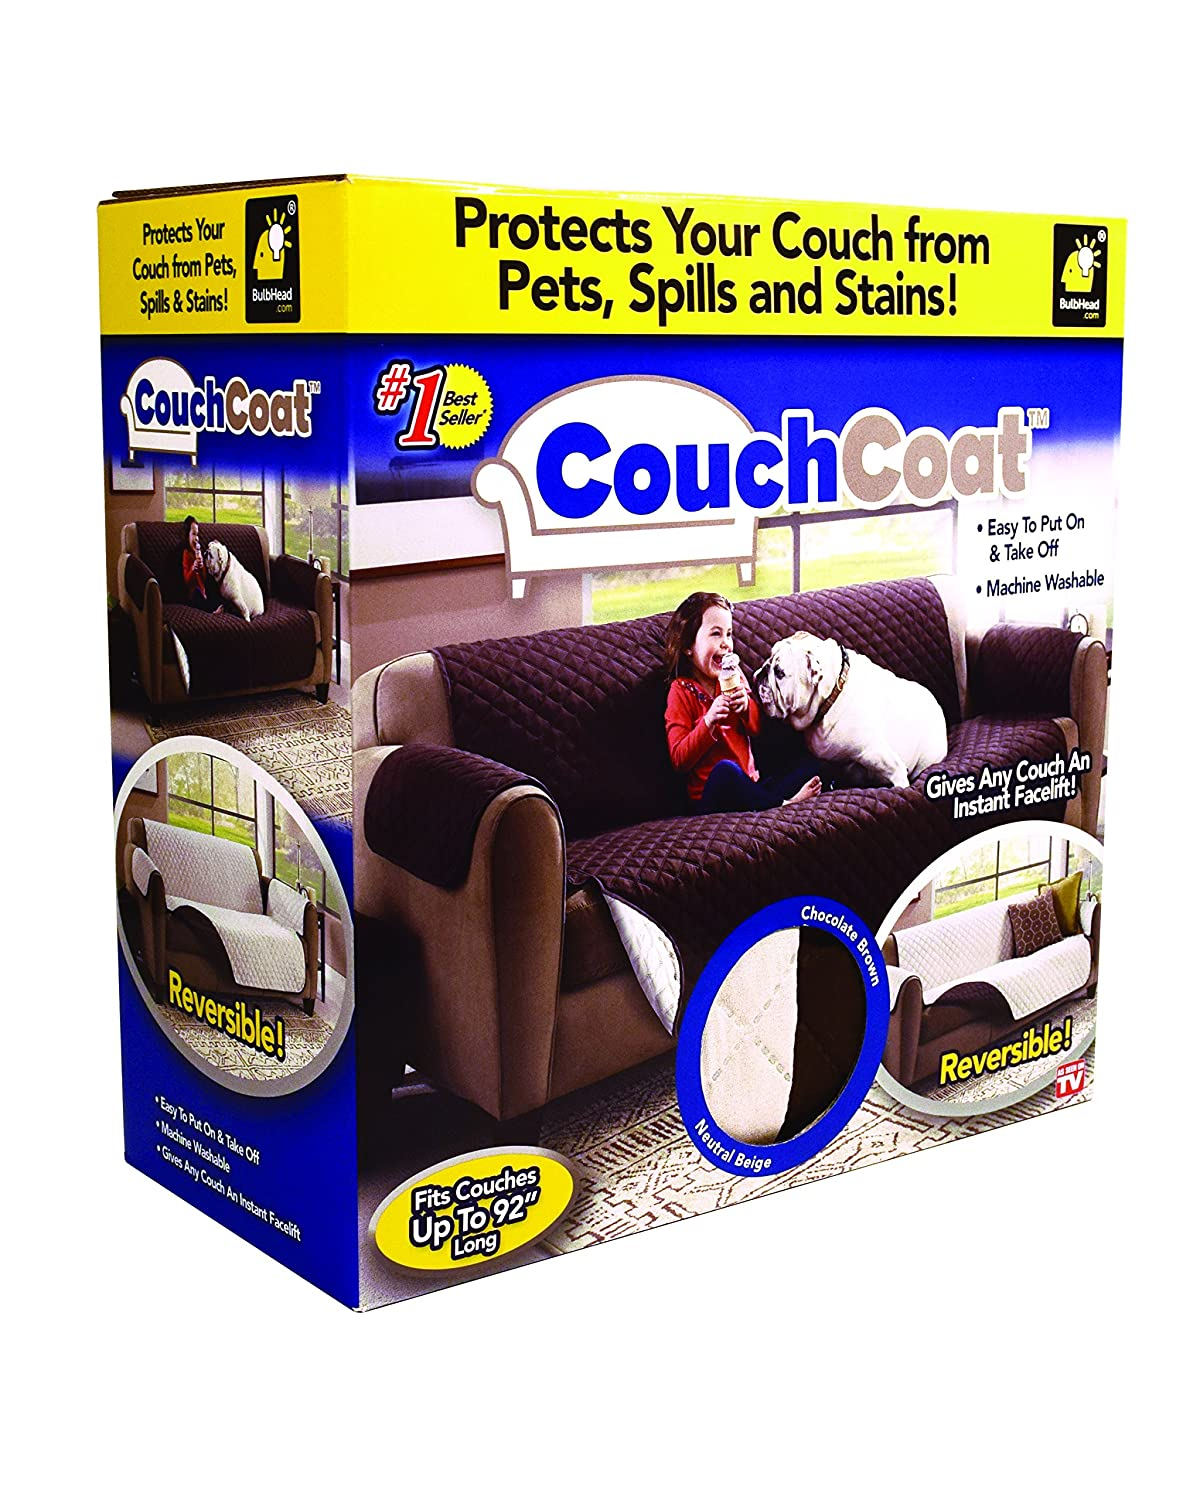 Enjoyable Couch Coat Reversible Microfiber Couch Cover By Bulbhead The Easy Furniture Protector From Pets Dogs And Kids Gmtry Best Dining Table And Chair Ideas Images Gmtryco